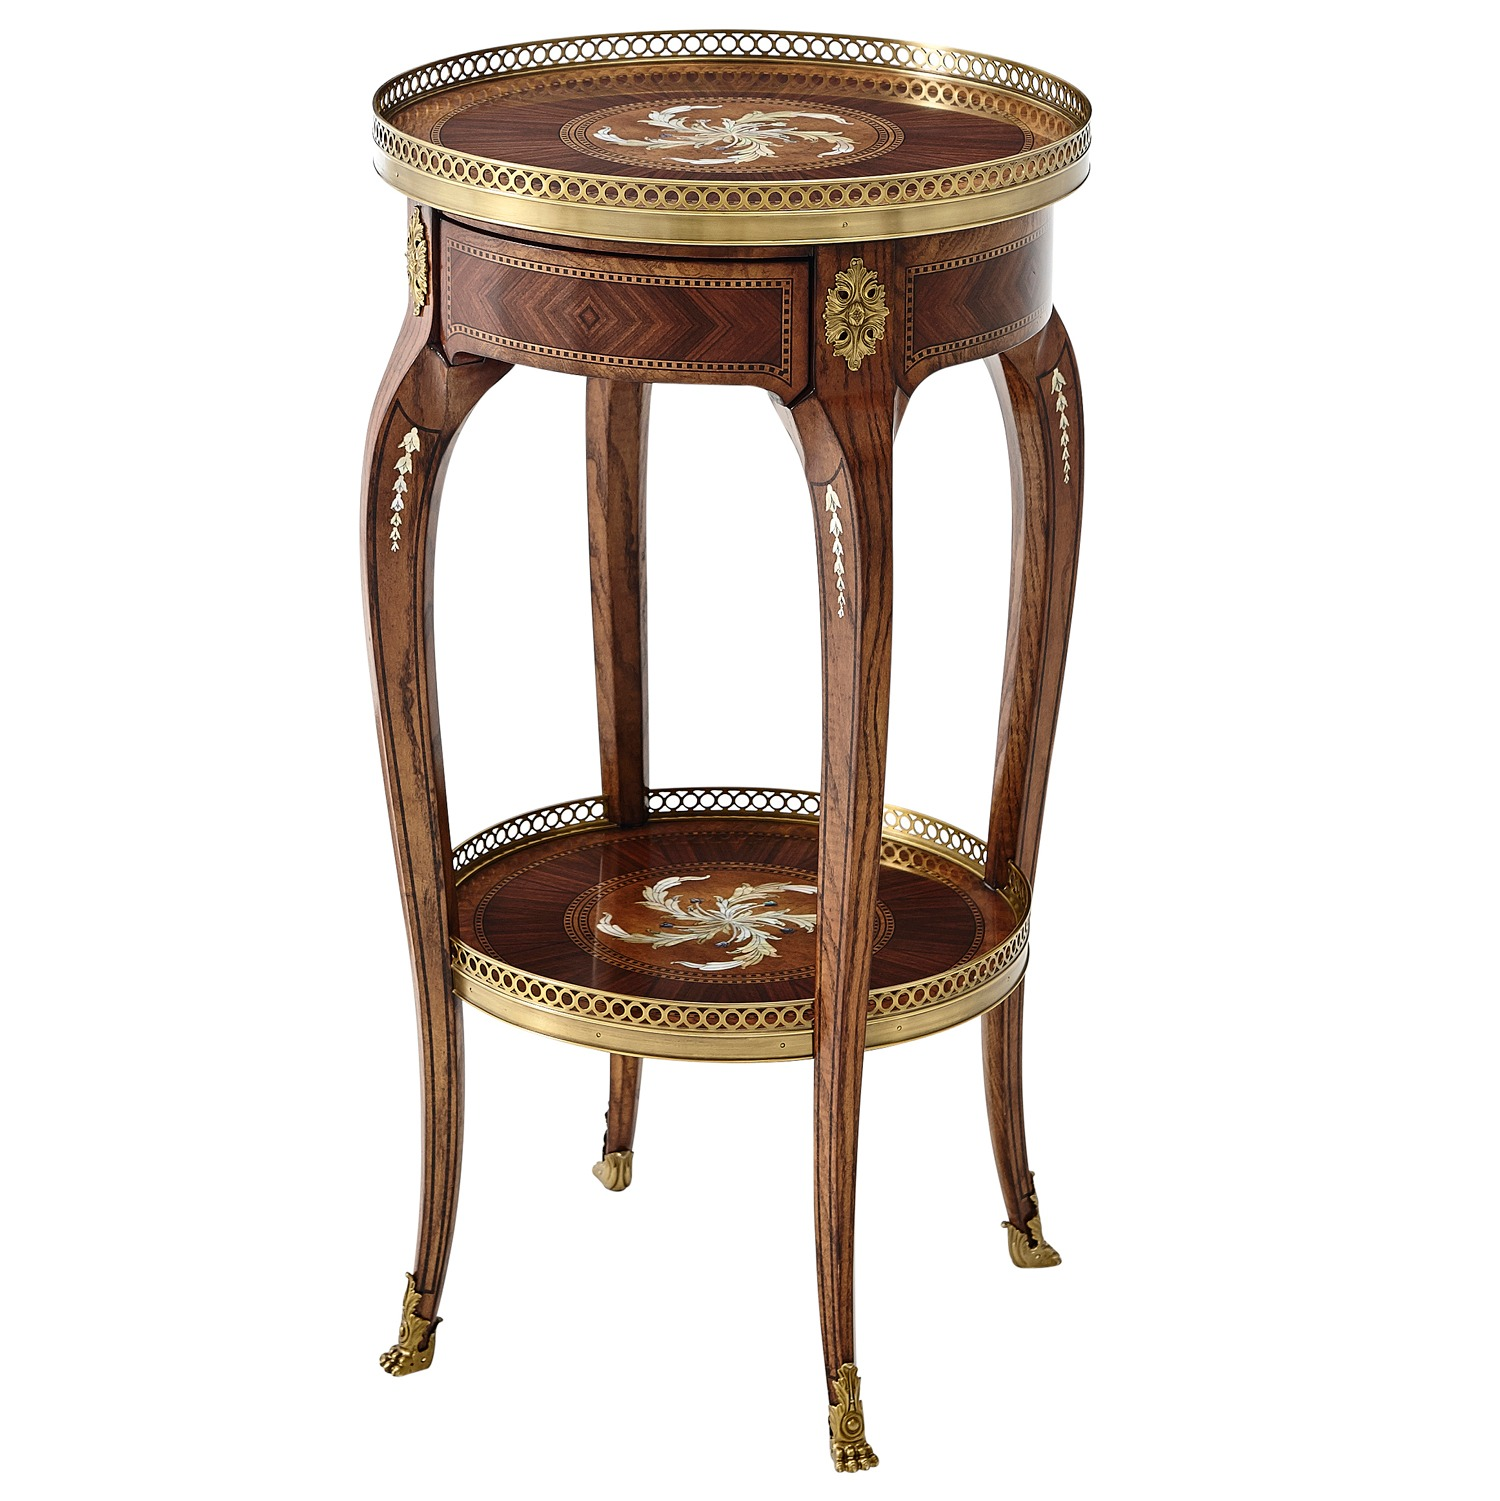 A mother of pearl inlaid lamp table